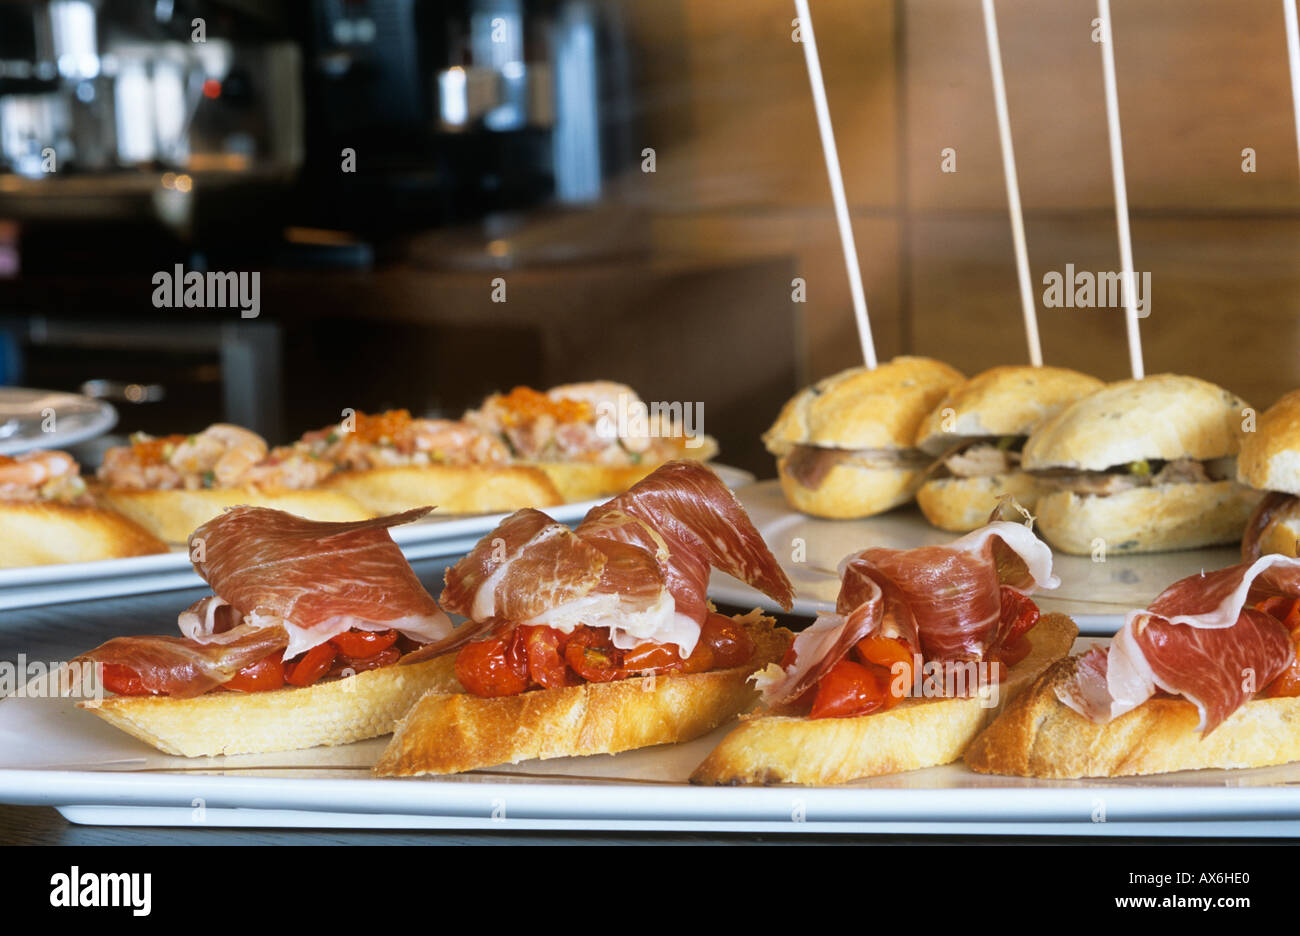 Tapas neatly arranged in spanish tapas bar authentic spanish stock photo royalty free image for Cuisine bar tapas